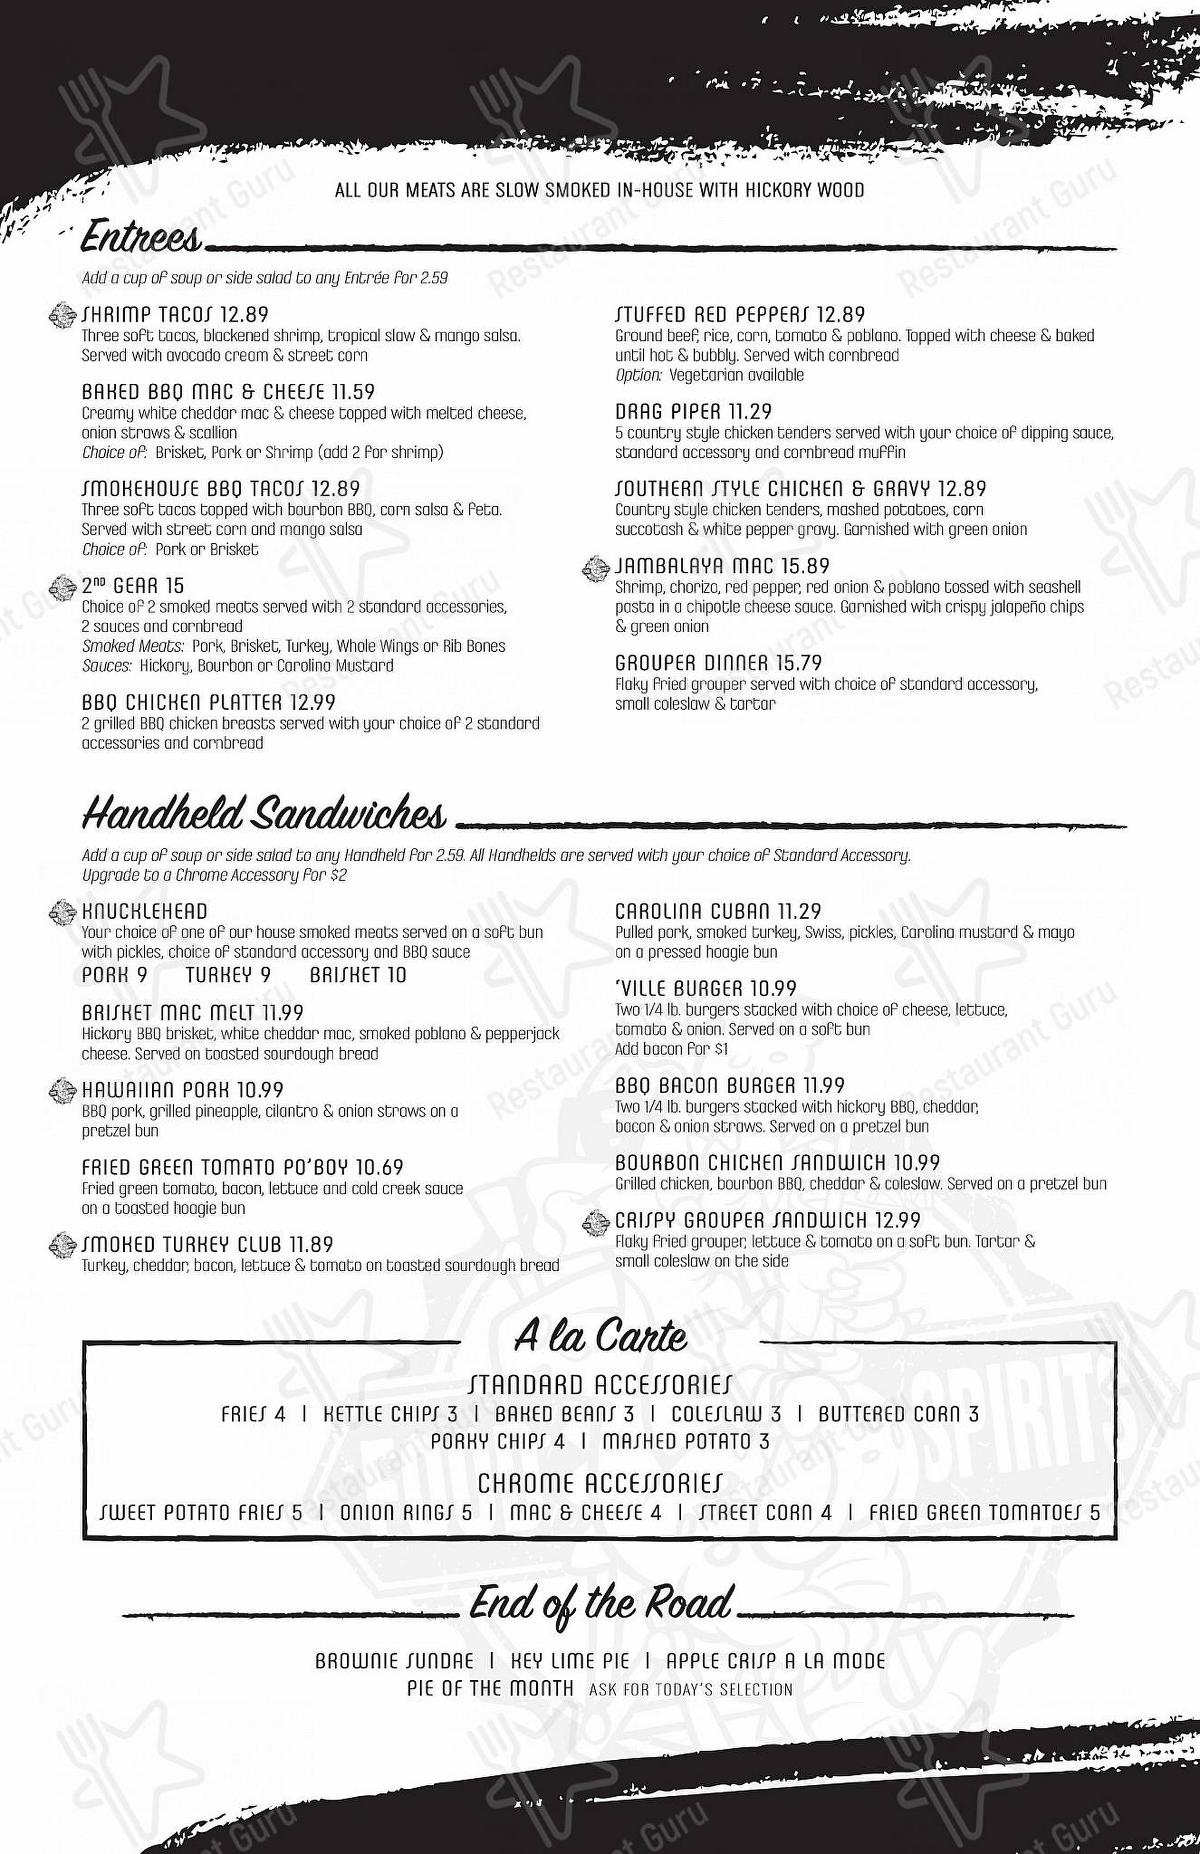 Check out the menu for Original Margaritaville